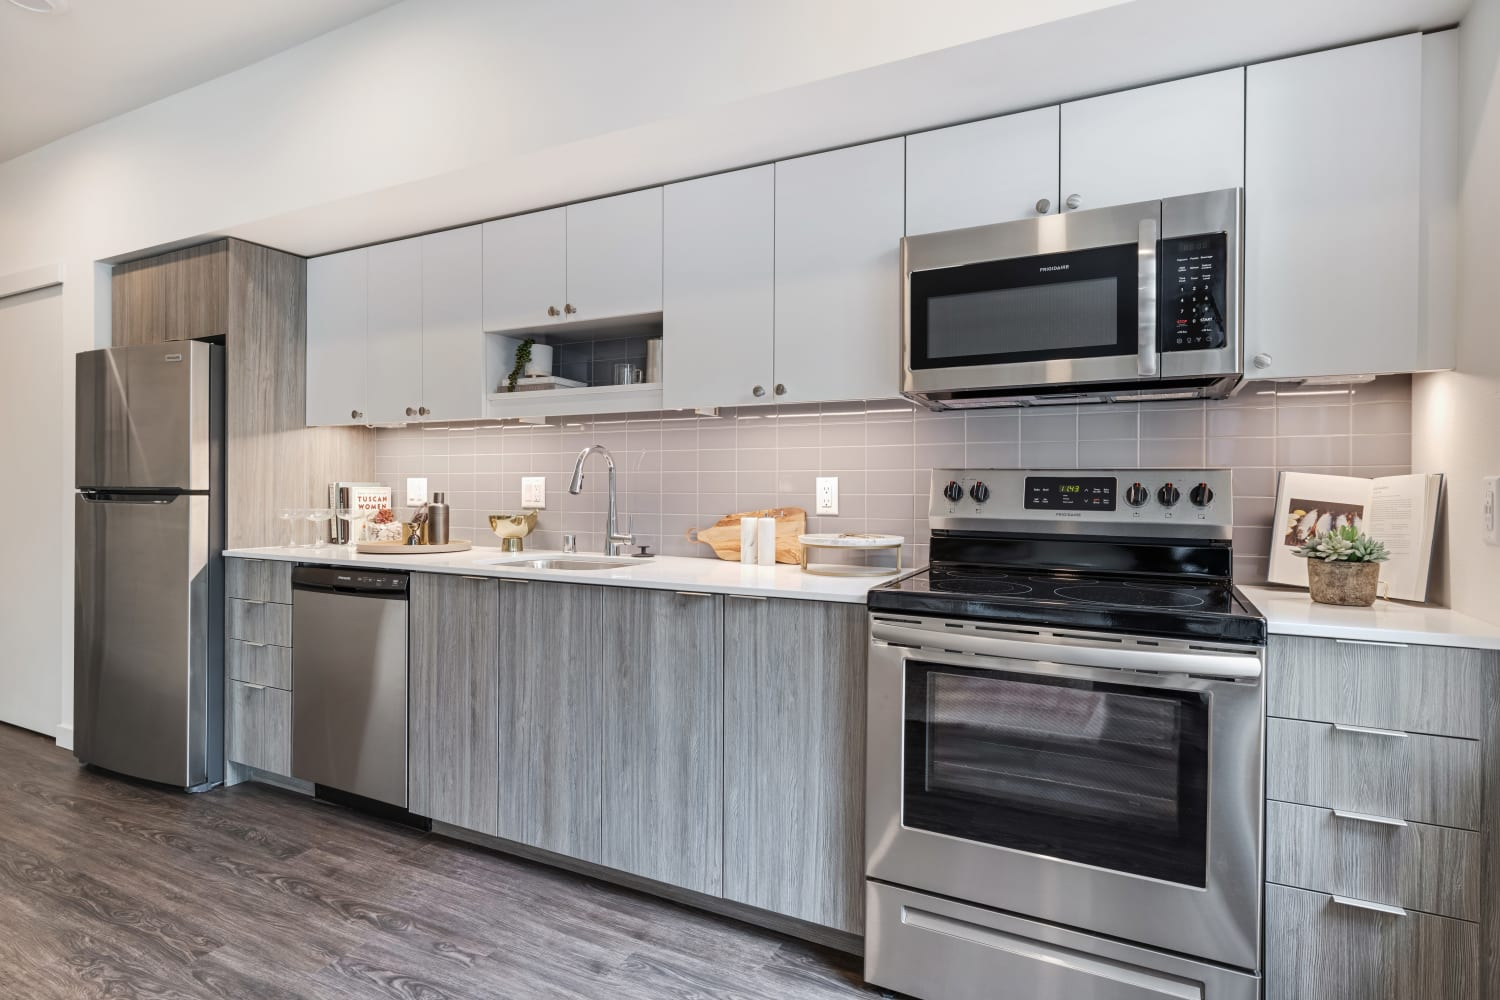 Model kitchen with stainless-steel appliances and chef's island at Nightingale in Redmond, Washington